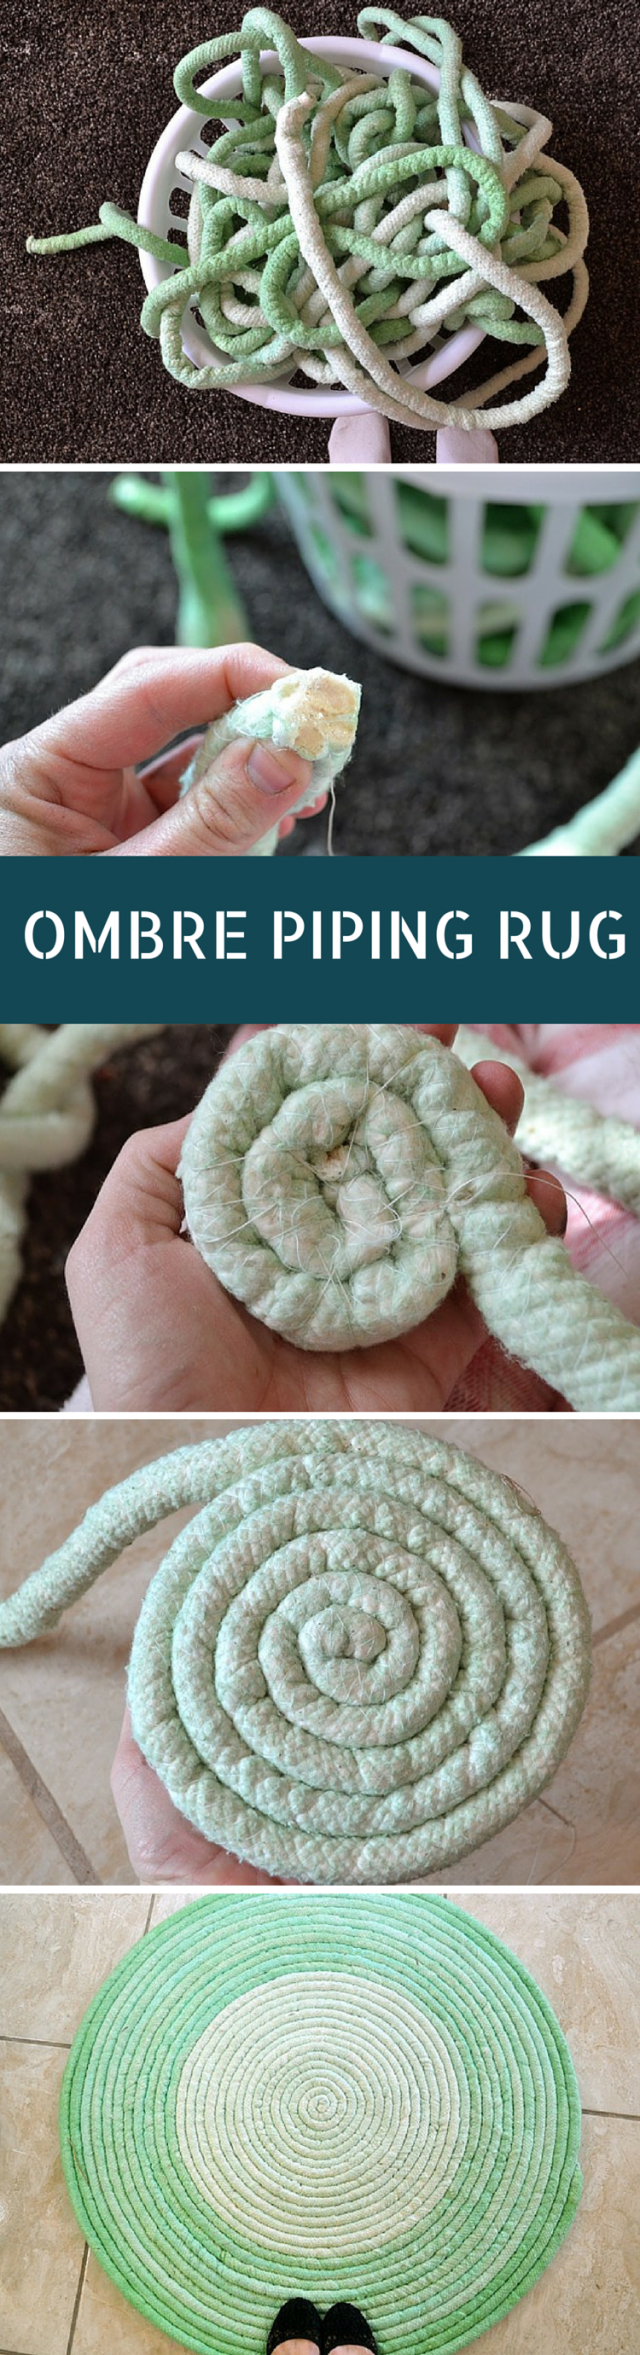 Ombre Cotton Piping Rug